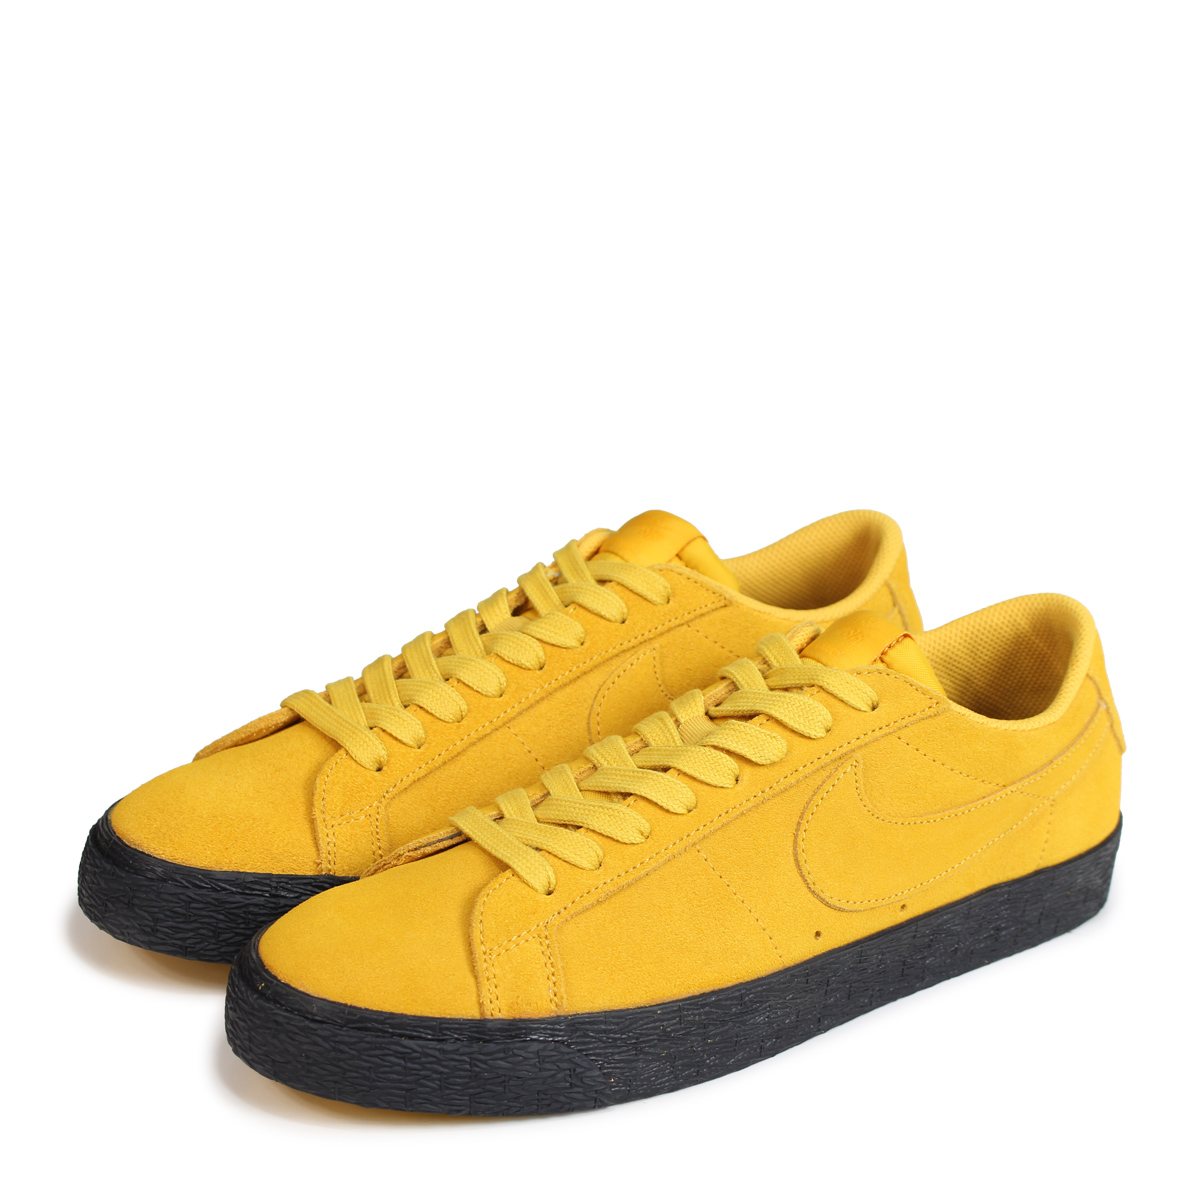 Nike NIKE SB blazer low sneakers men ZOOM BLAZER LOW 864,347 701 yellow